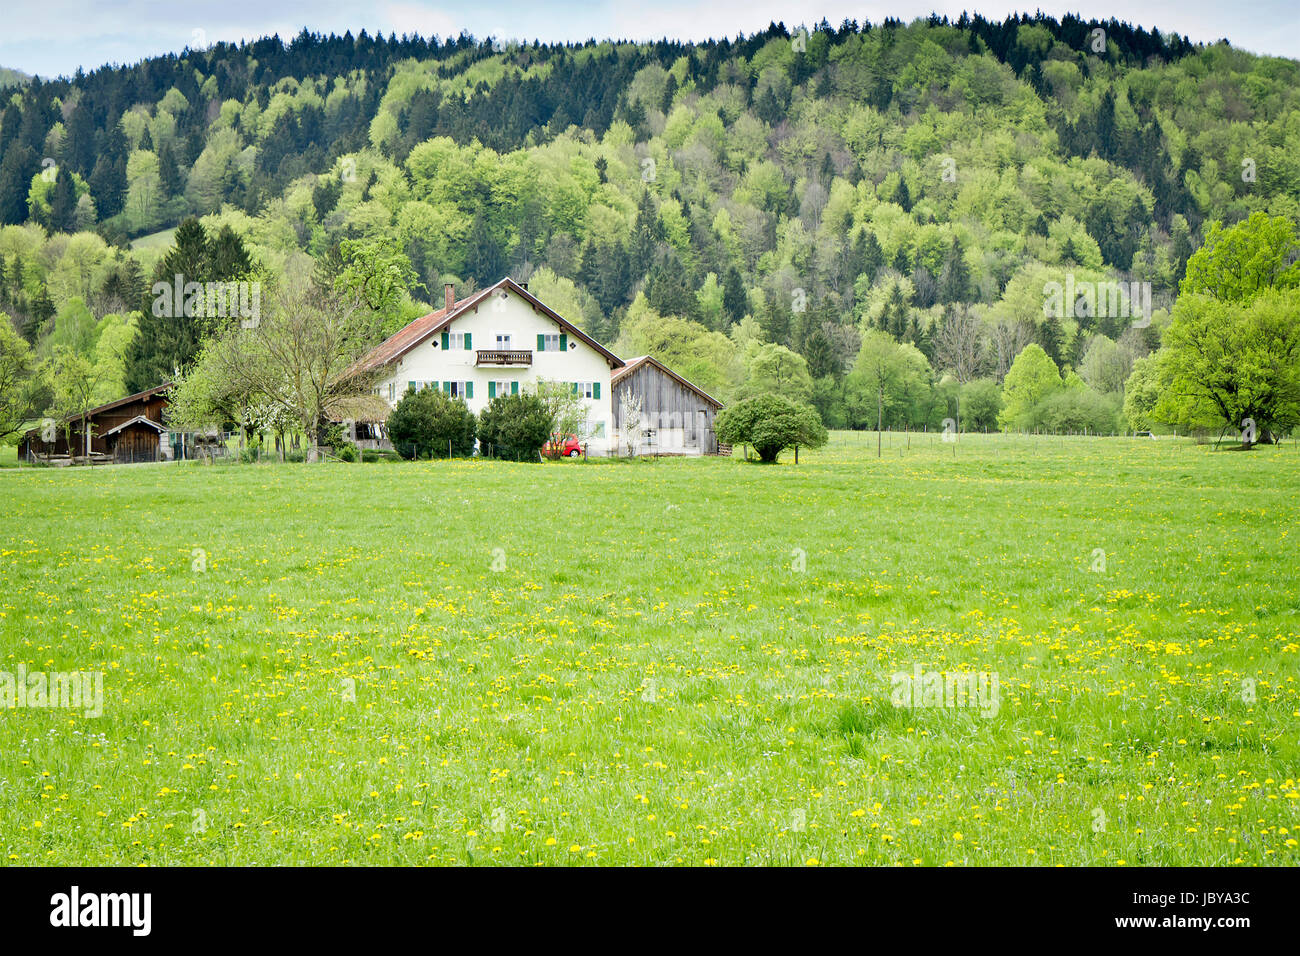 An image of a house in the green nature - Stock Image